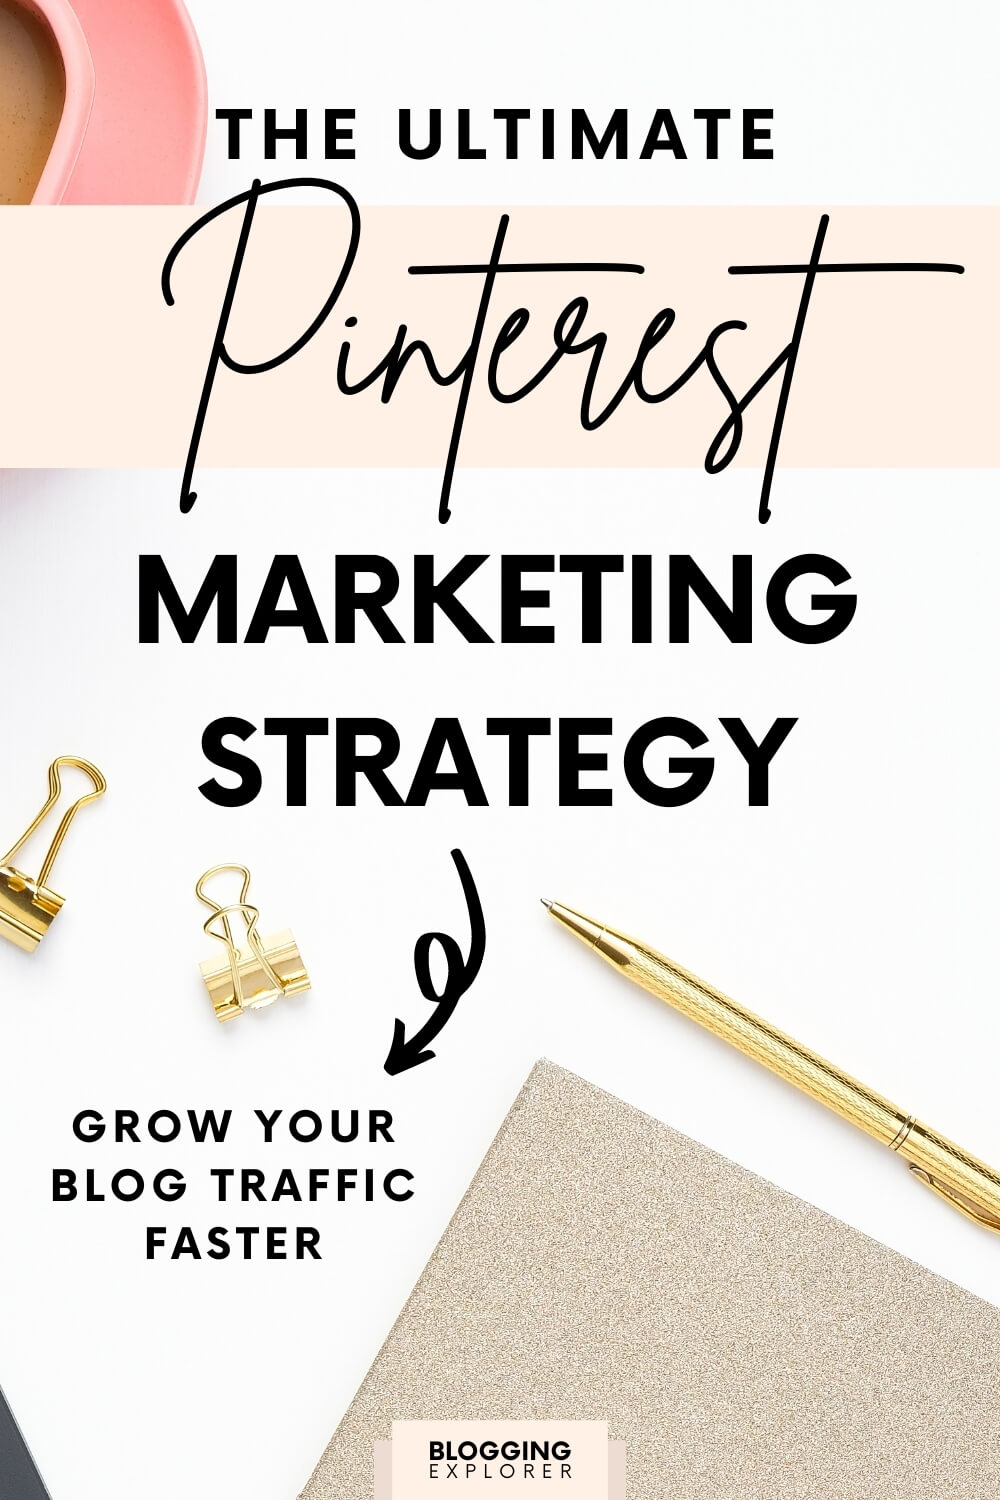 Pinterest Strategy Guide: How to Grow Your Traffic With Pinterest in 2021